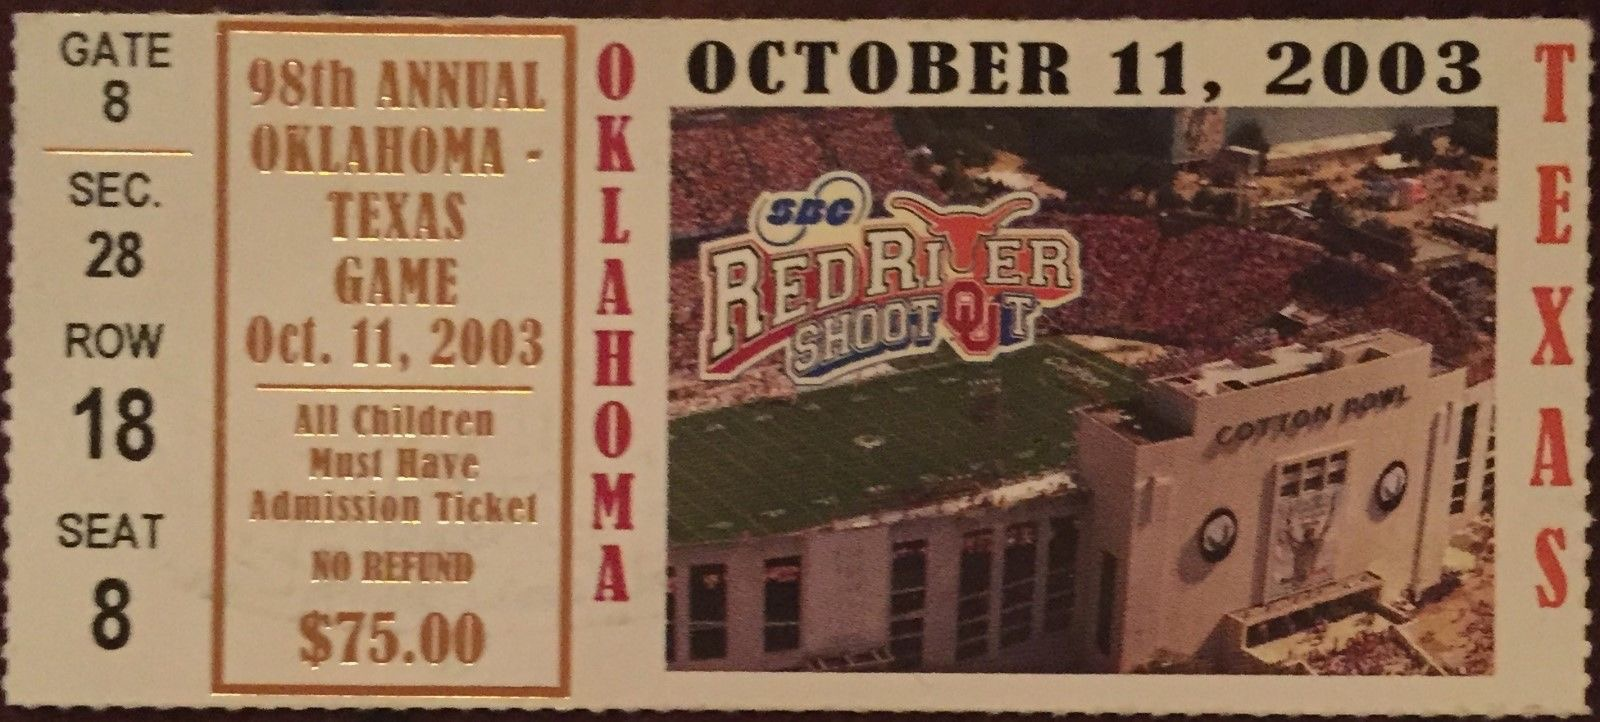 2003 NCAAF Oklahoma vs Texas ticket stub